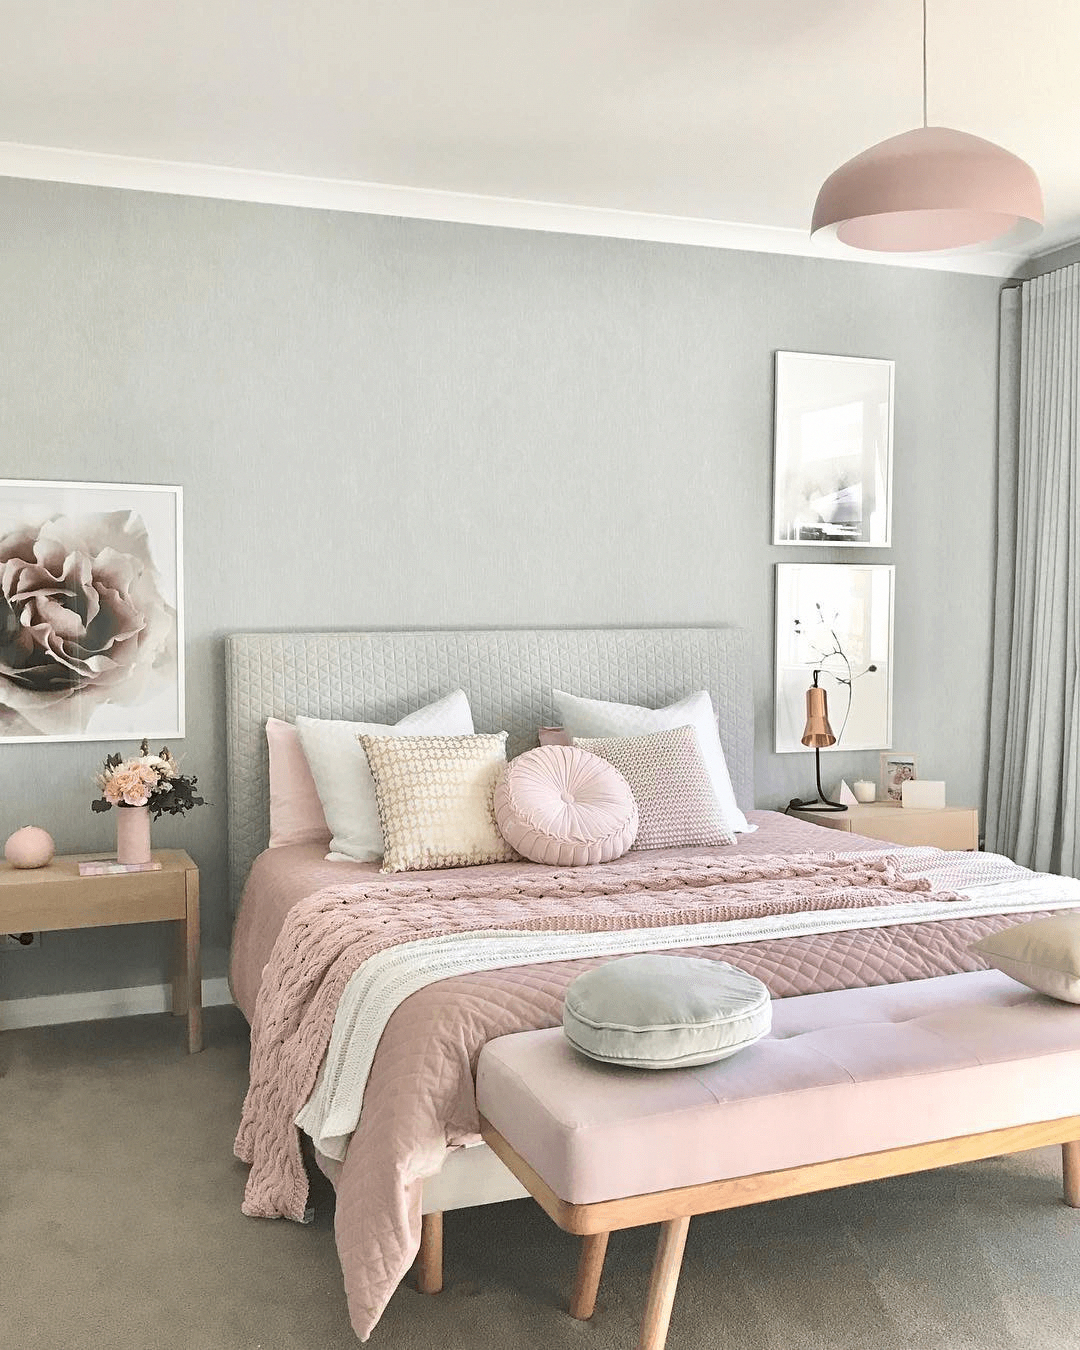 Pastel Color Bedroom Colour Palettes For Couples Pinkbedroomforwomen Pink Bedroom Design Interior Design Bedroom Small Home Decor Bedroom